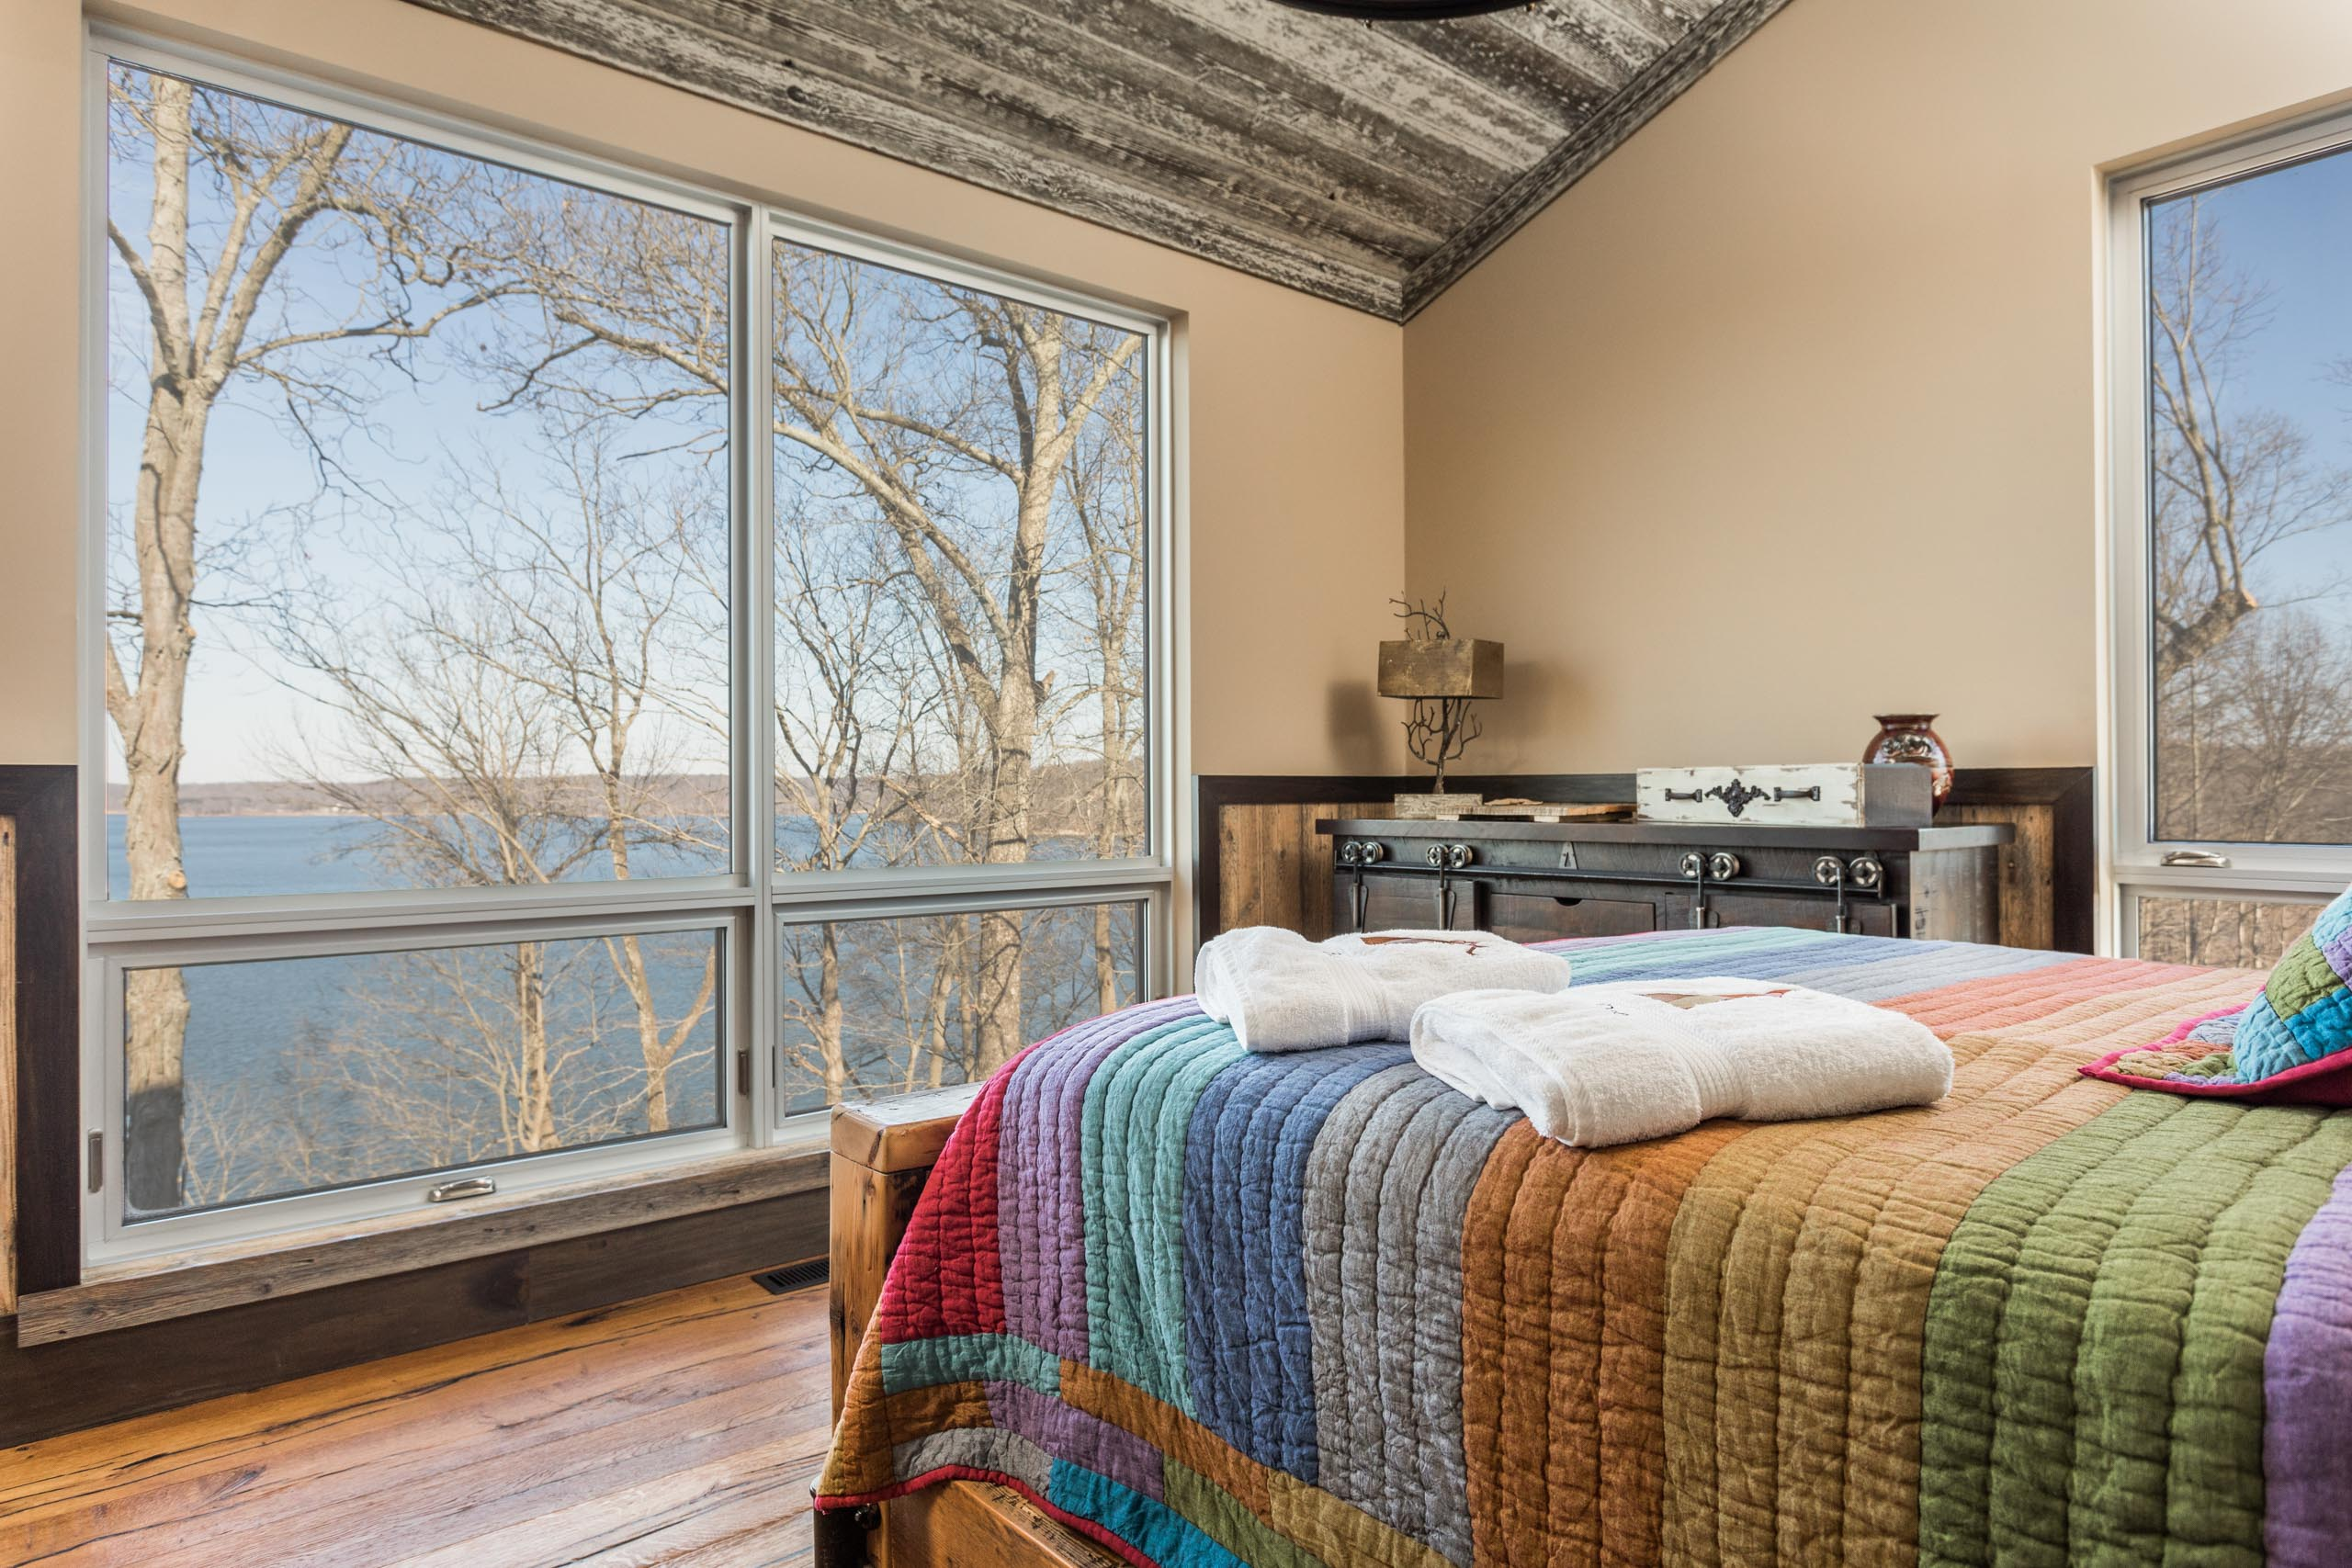 A combination of fixed and awning windows frame beautiful views of Lake Monroe.